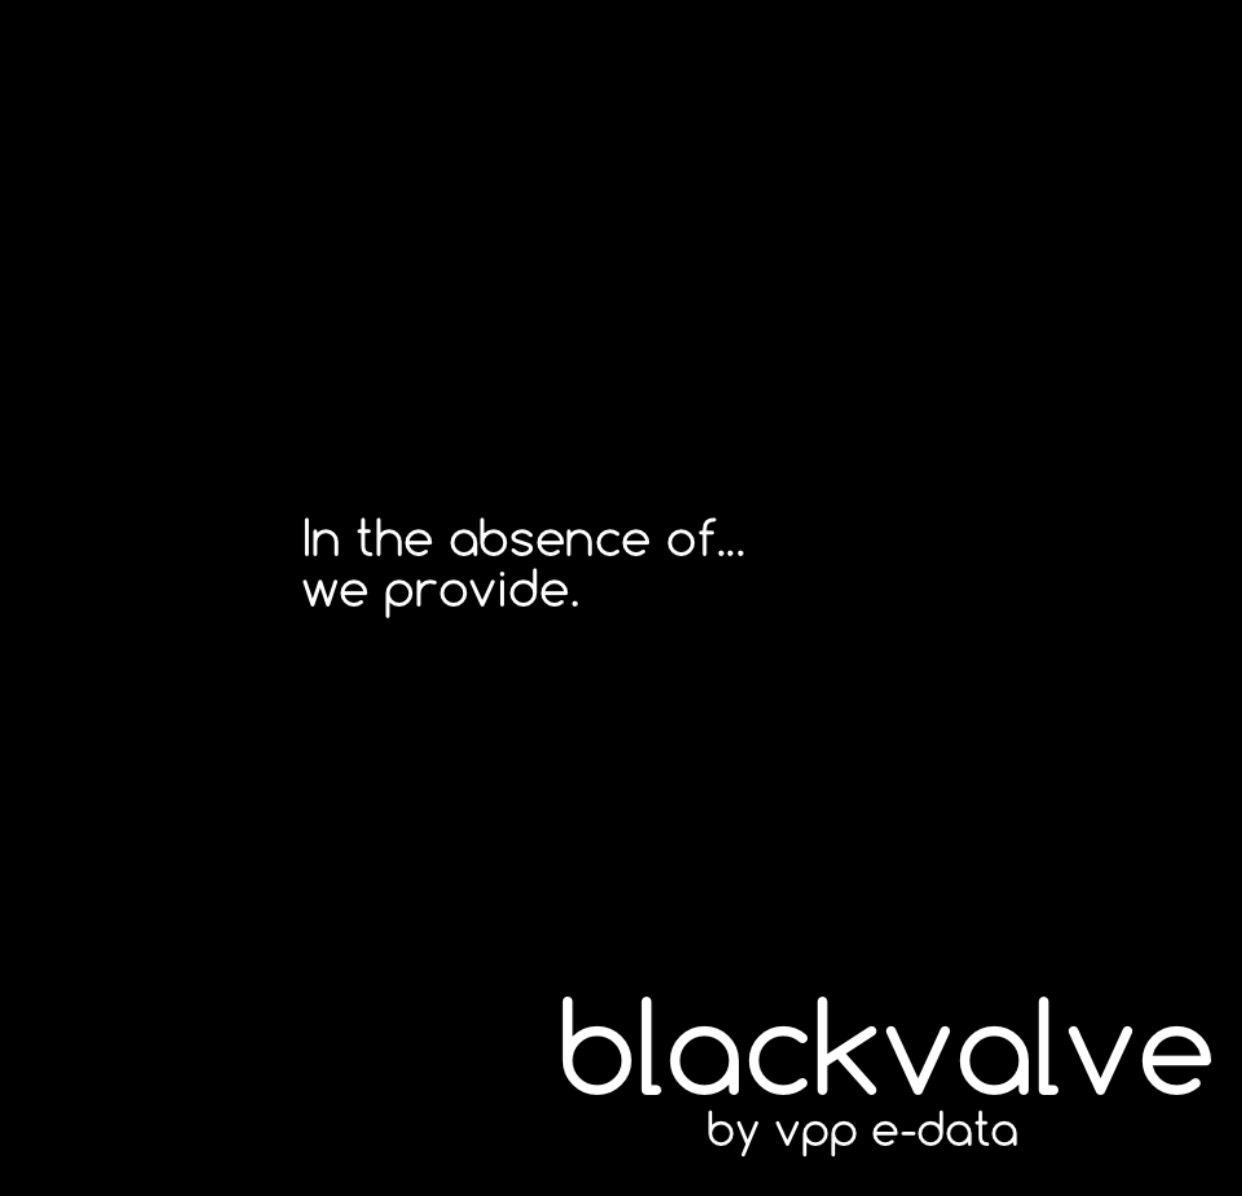 BLACKVALVE by VPP e-Data